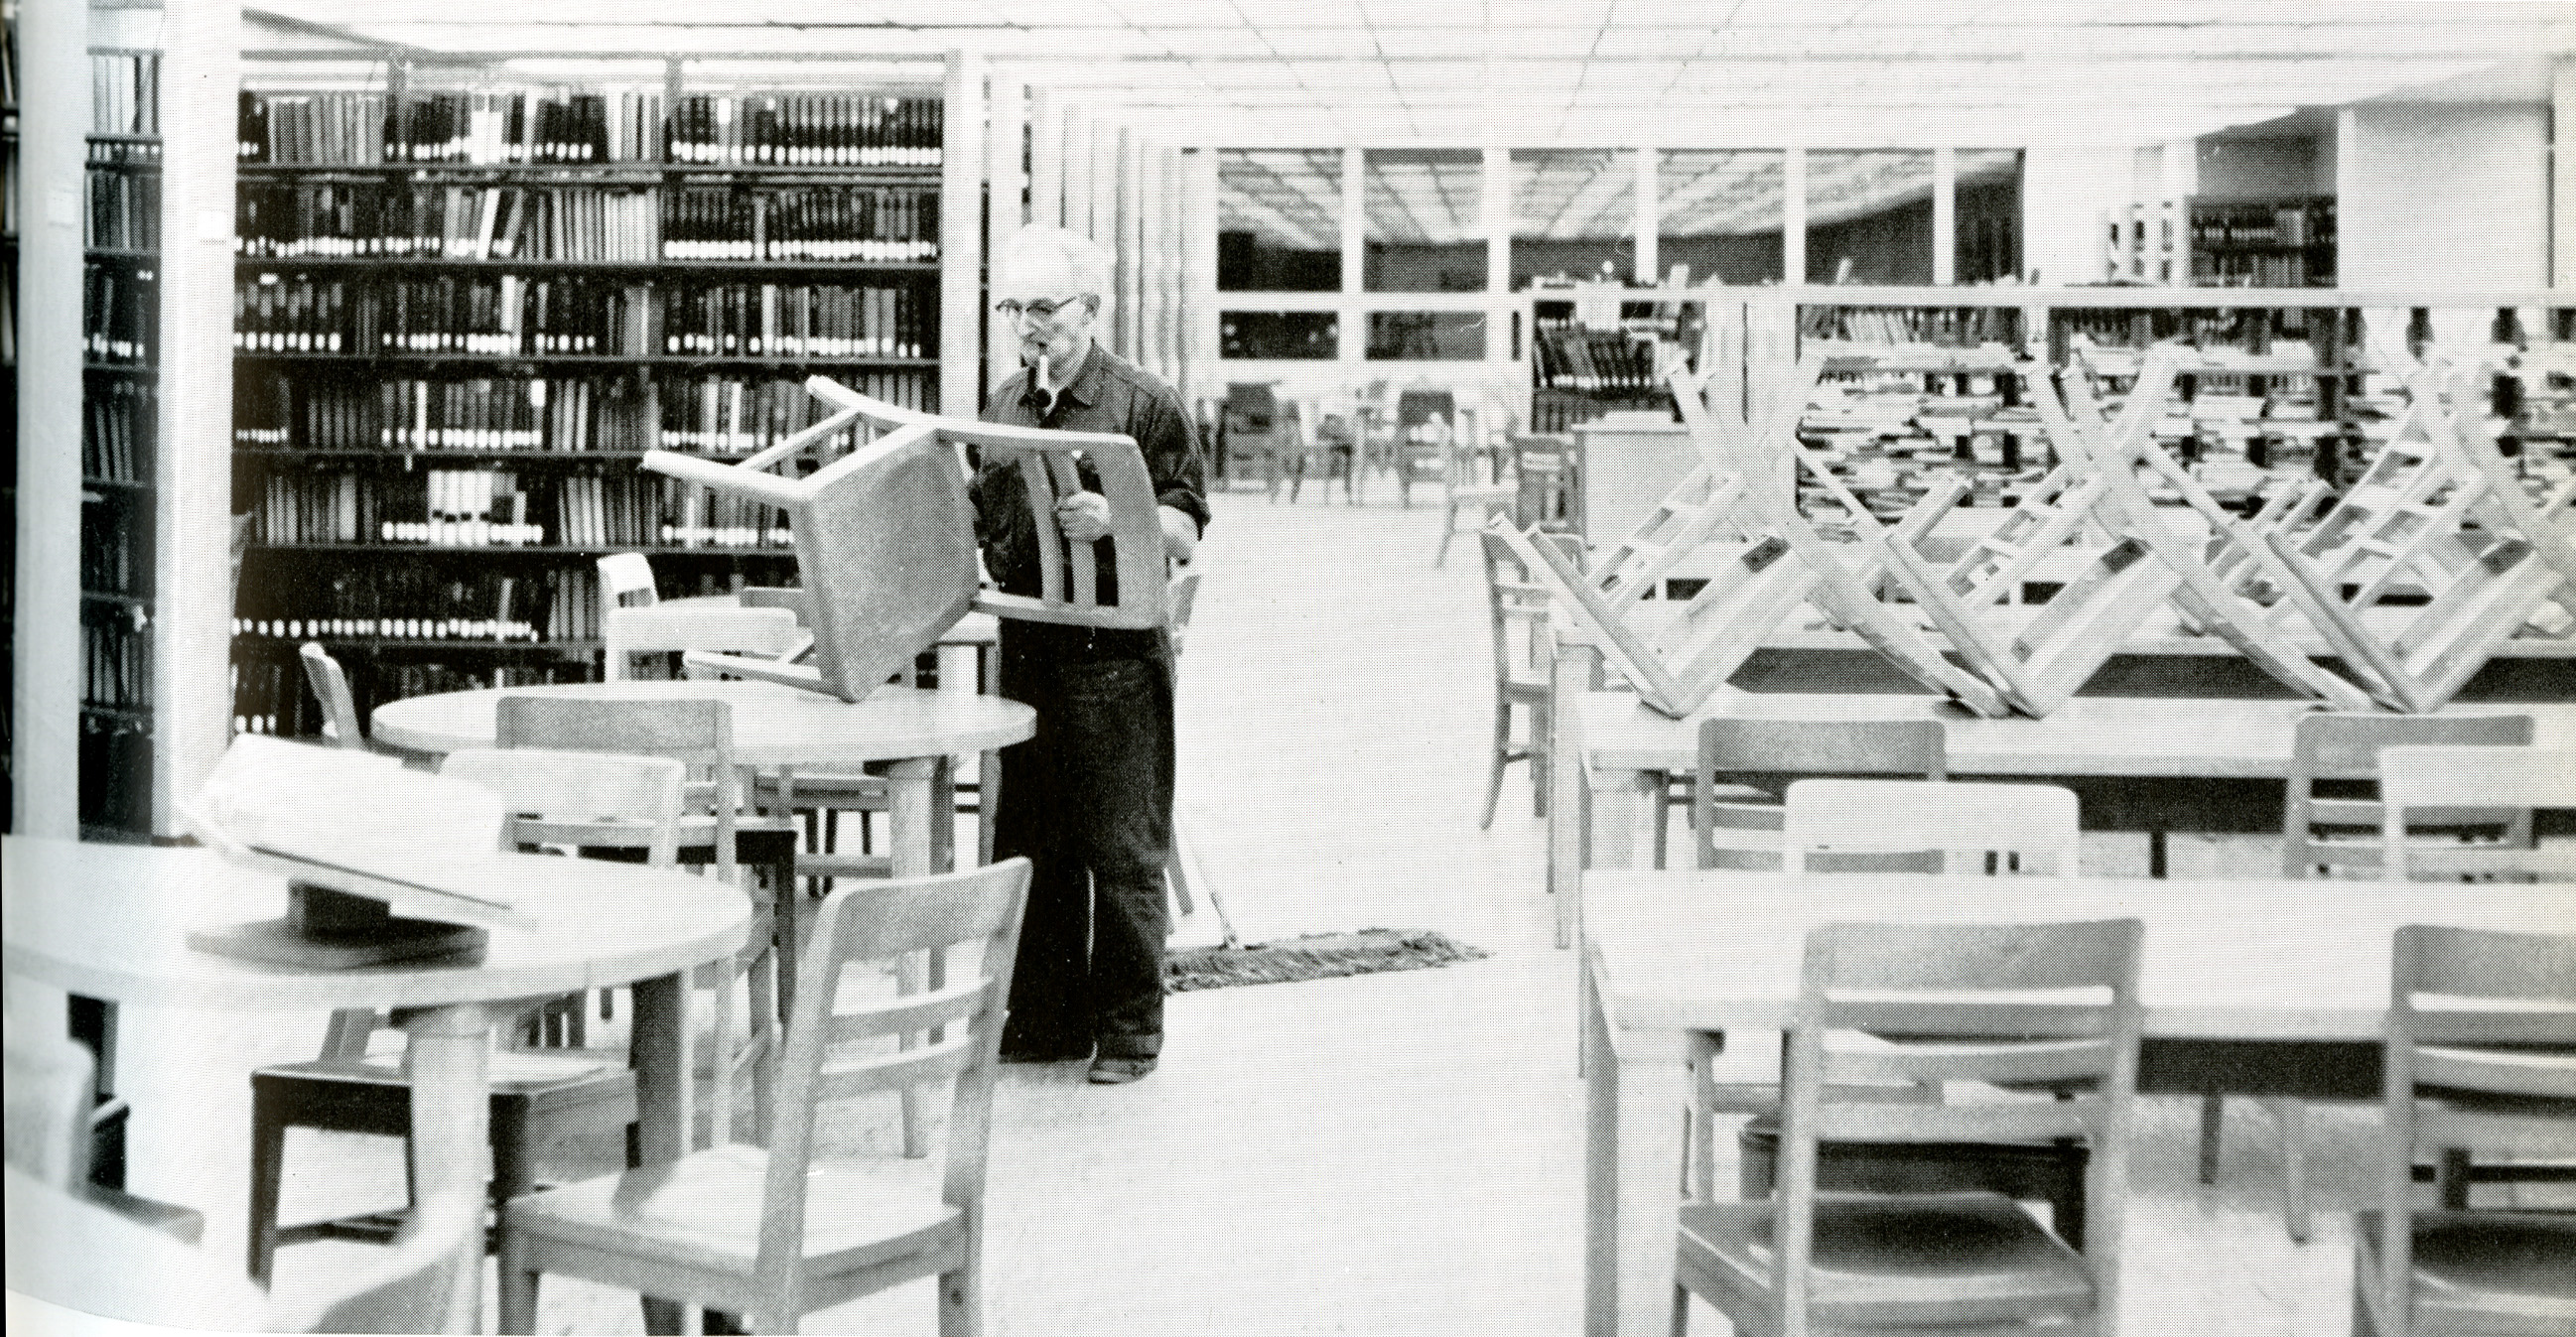 Man cleaning the library